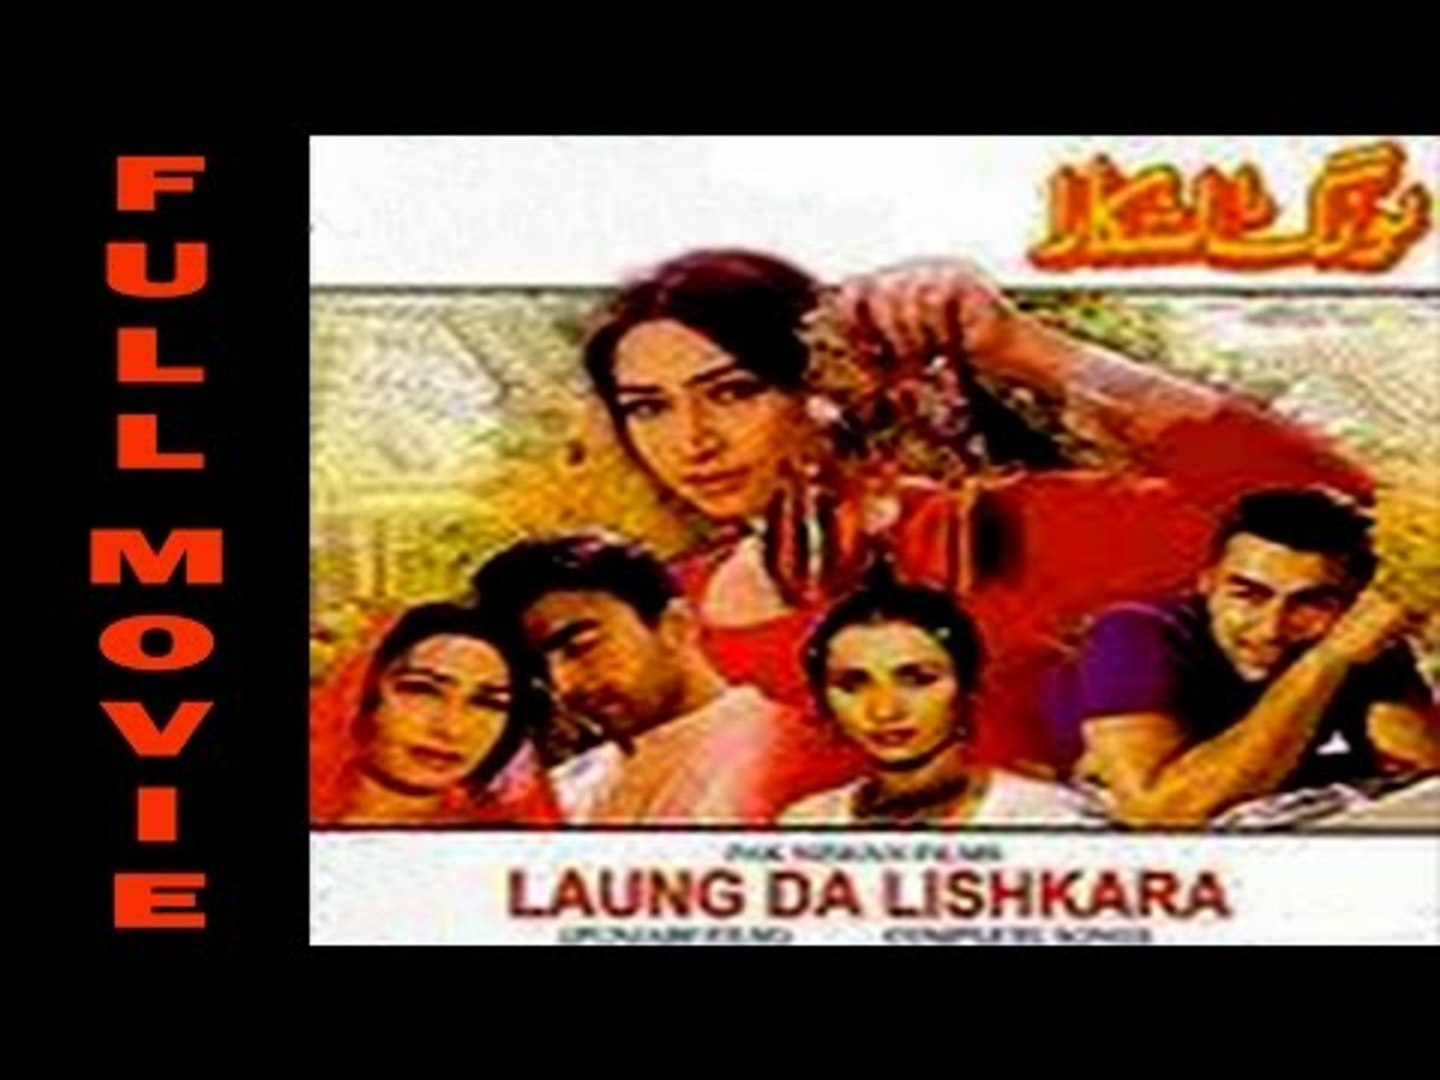 Laung Da Lashkara Full Movie - Punjabi Romantic Full Movie - Pakistan Movie - Laung Da Lashkara 2000